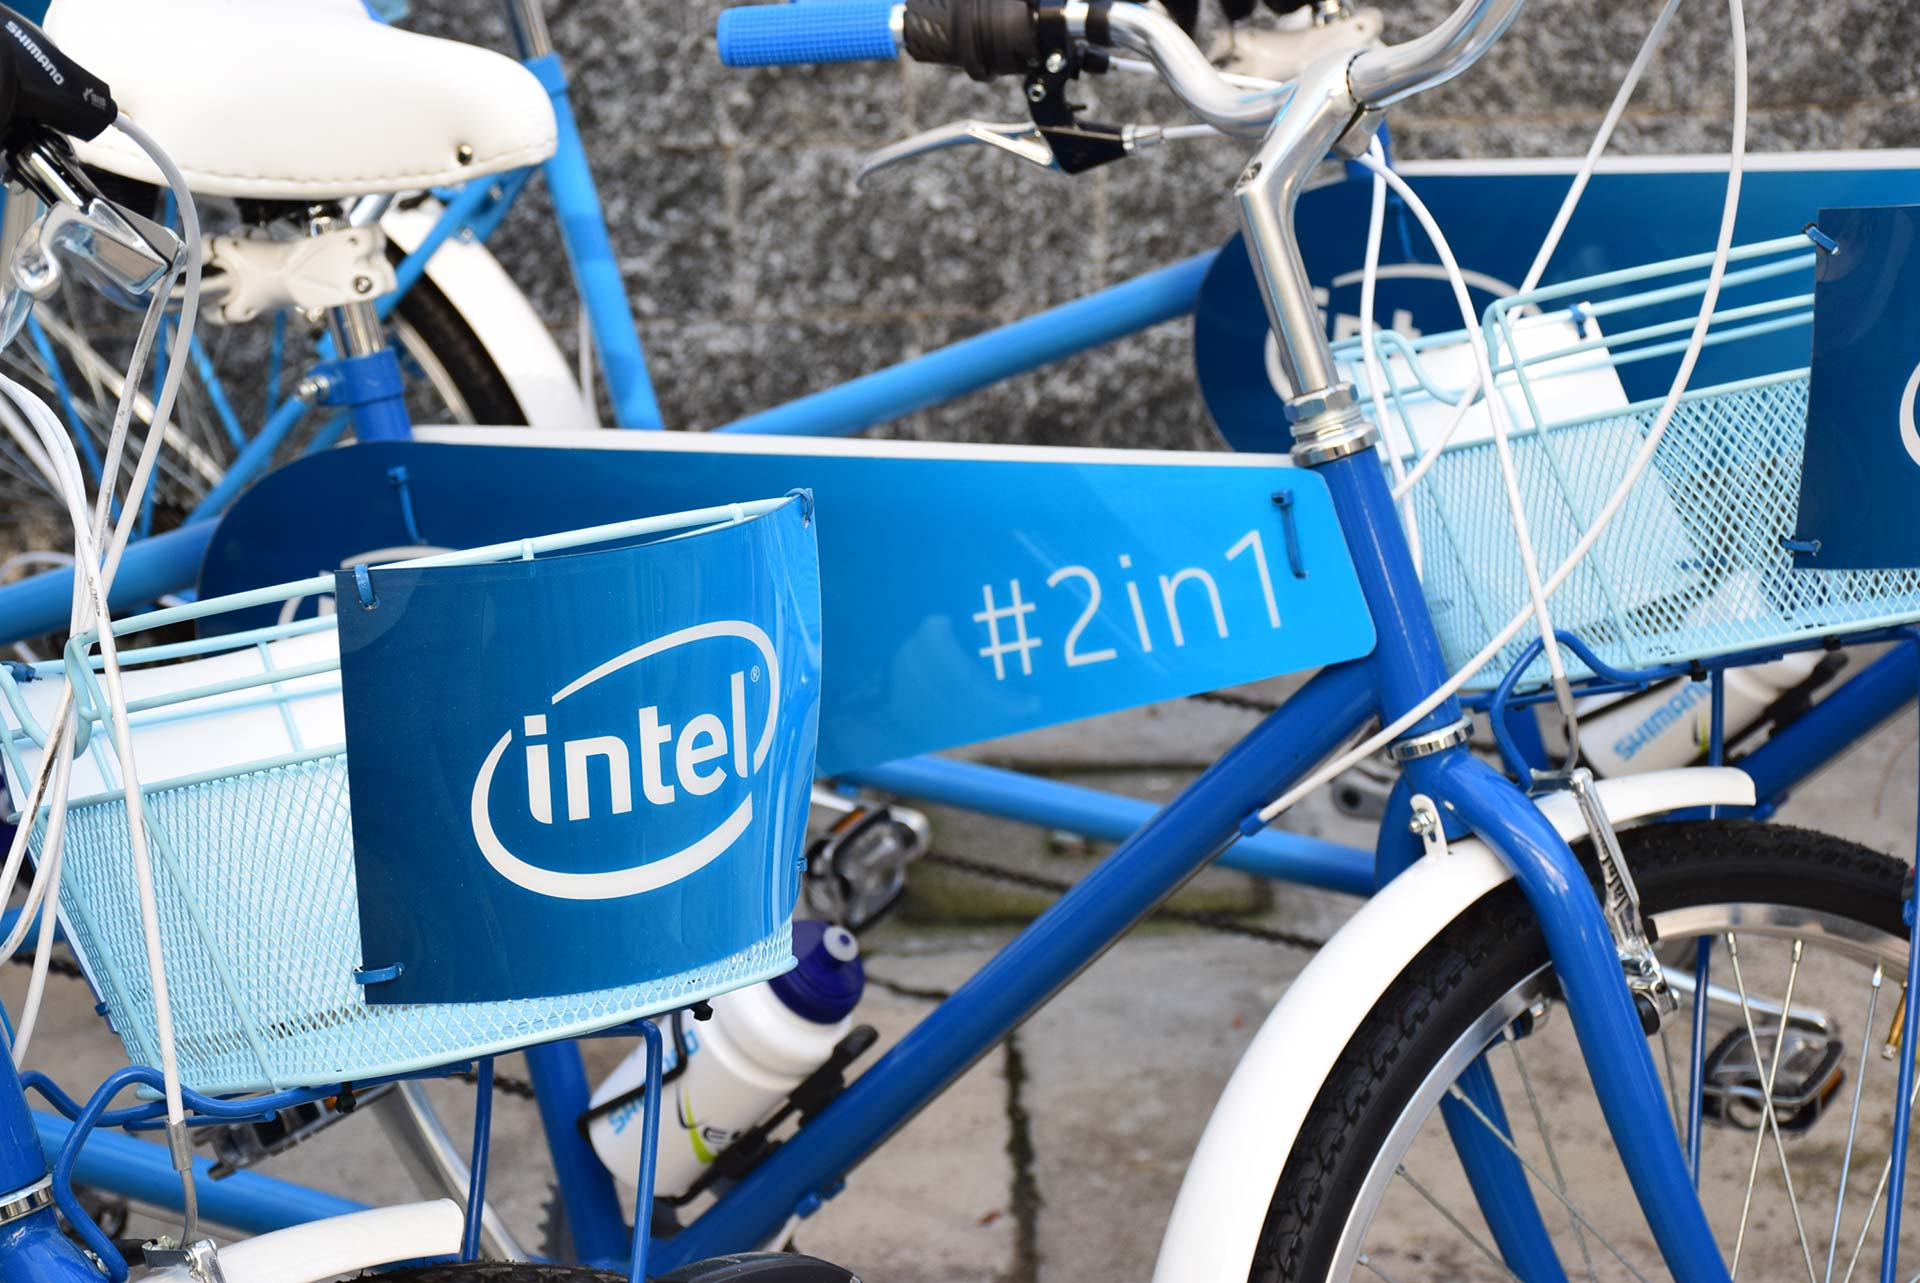 Intel #2in1 - Decorazione Cargo-bike